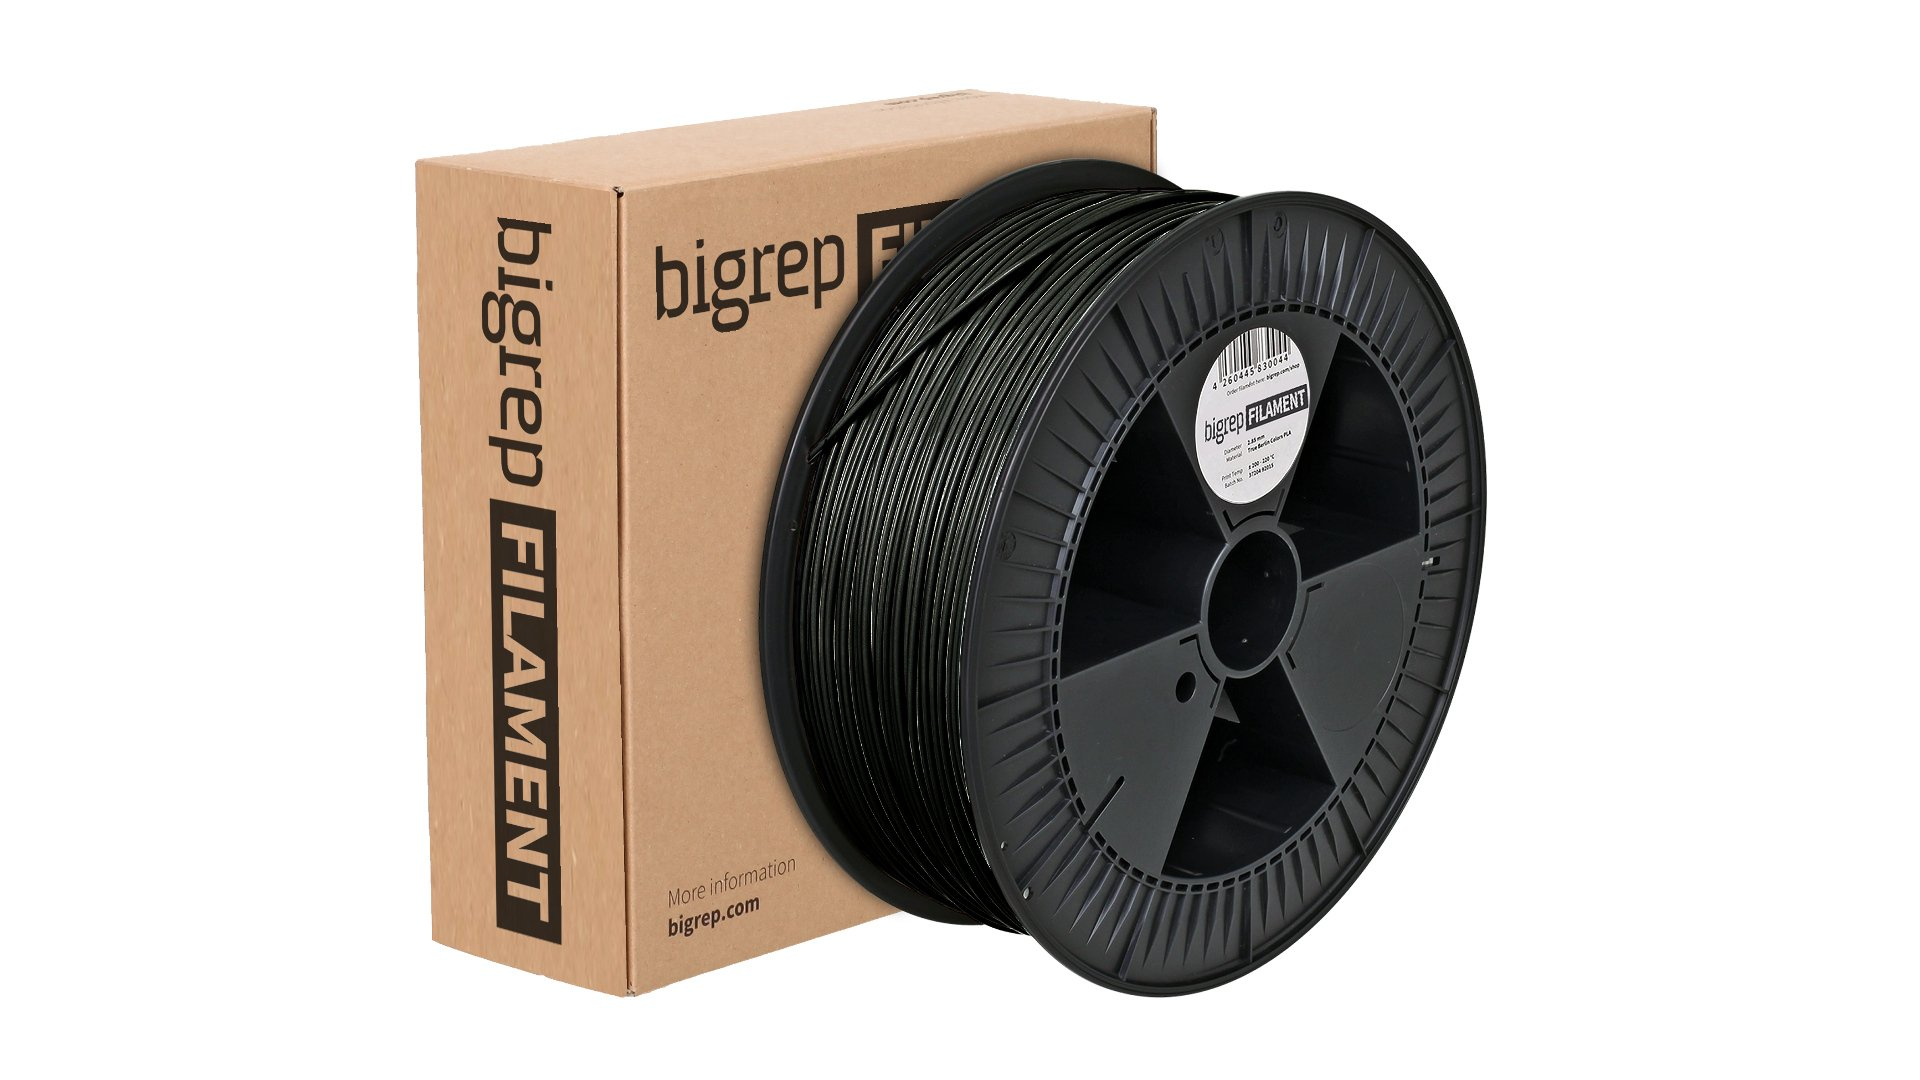 BigRep Launches New Pro Flex Filament for 3D Printing | All3DP